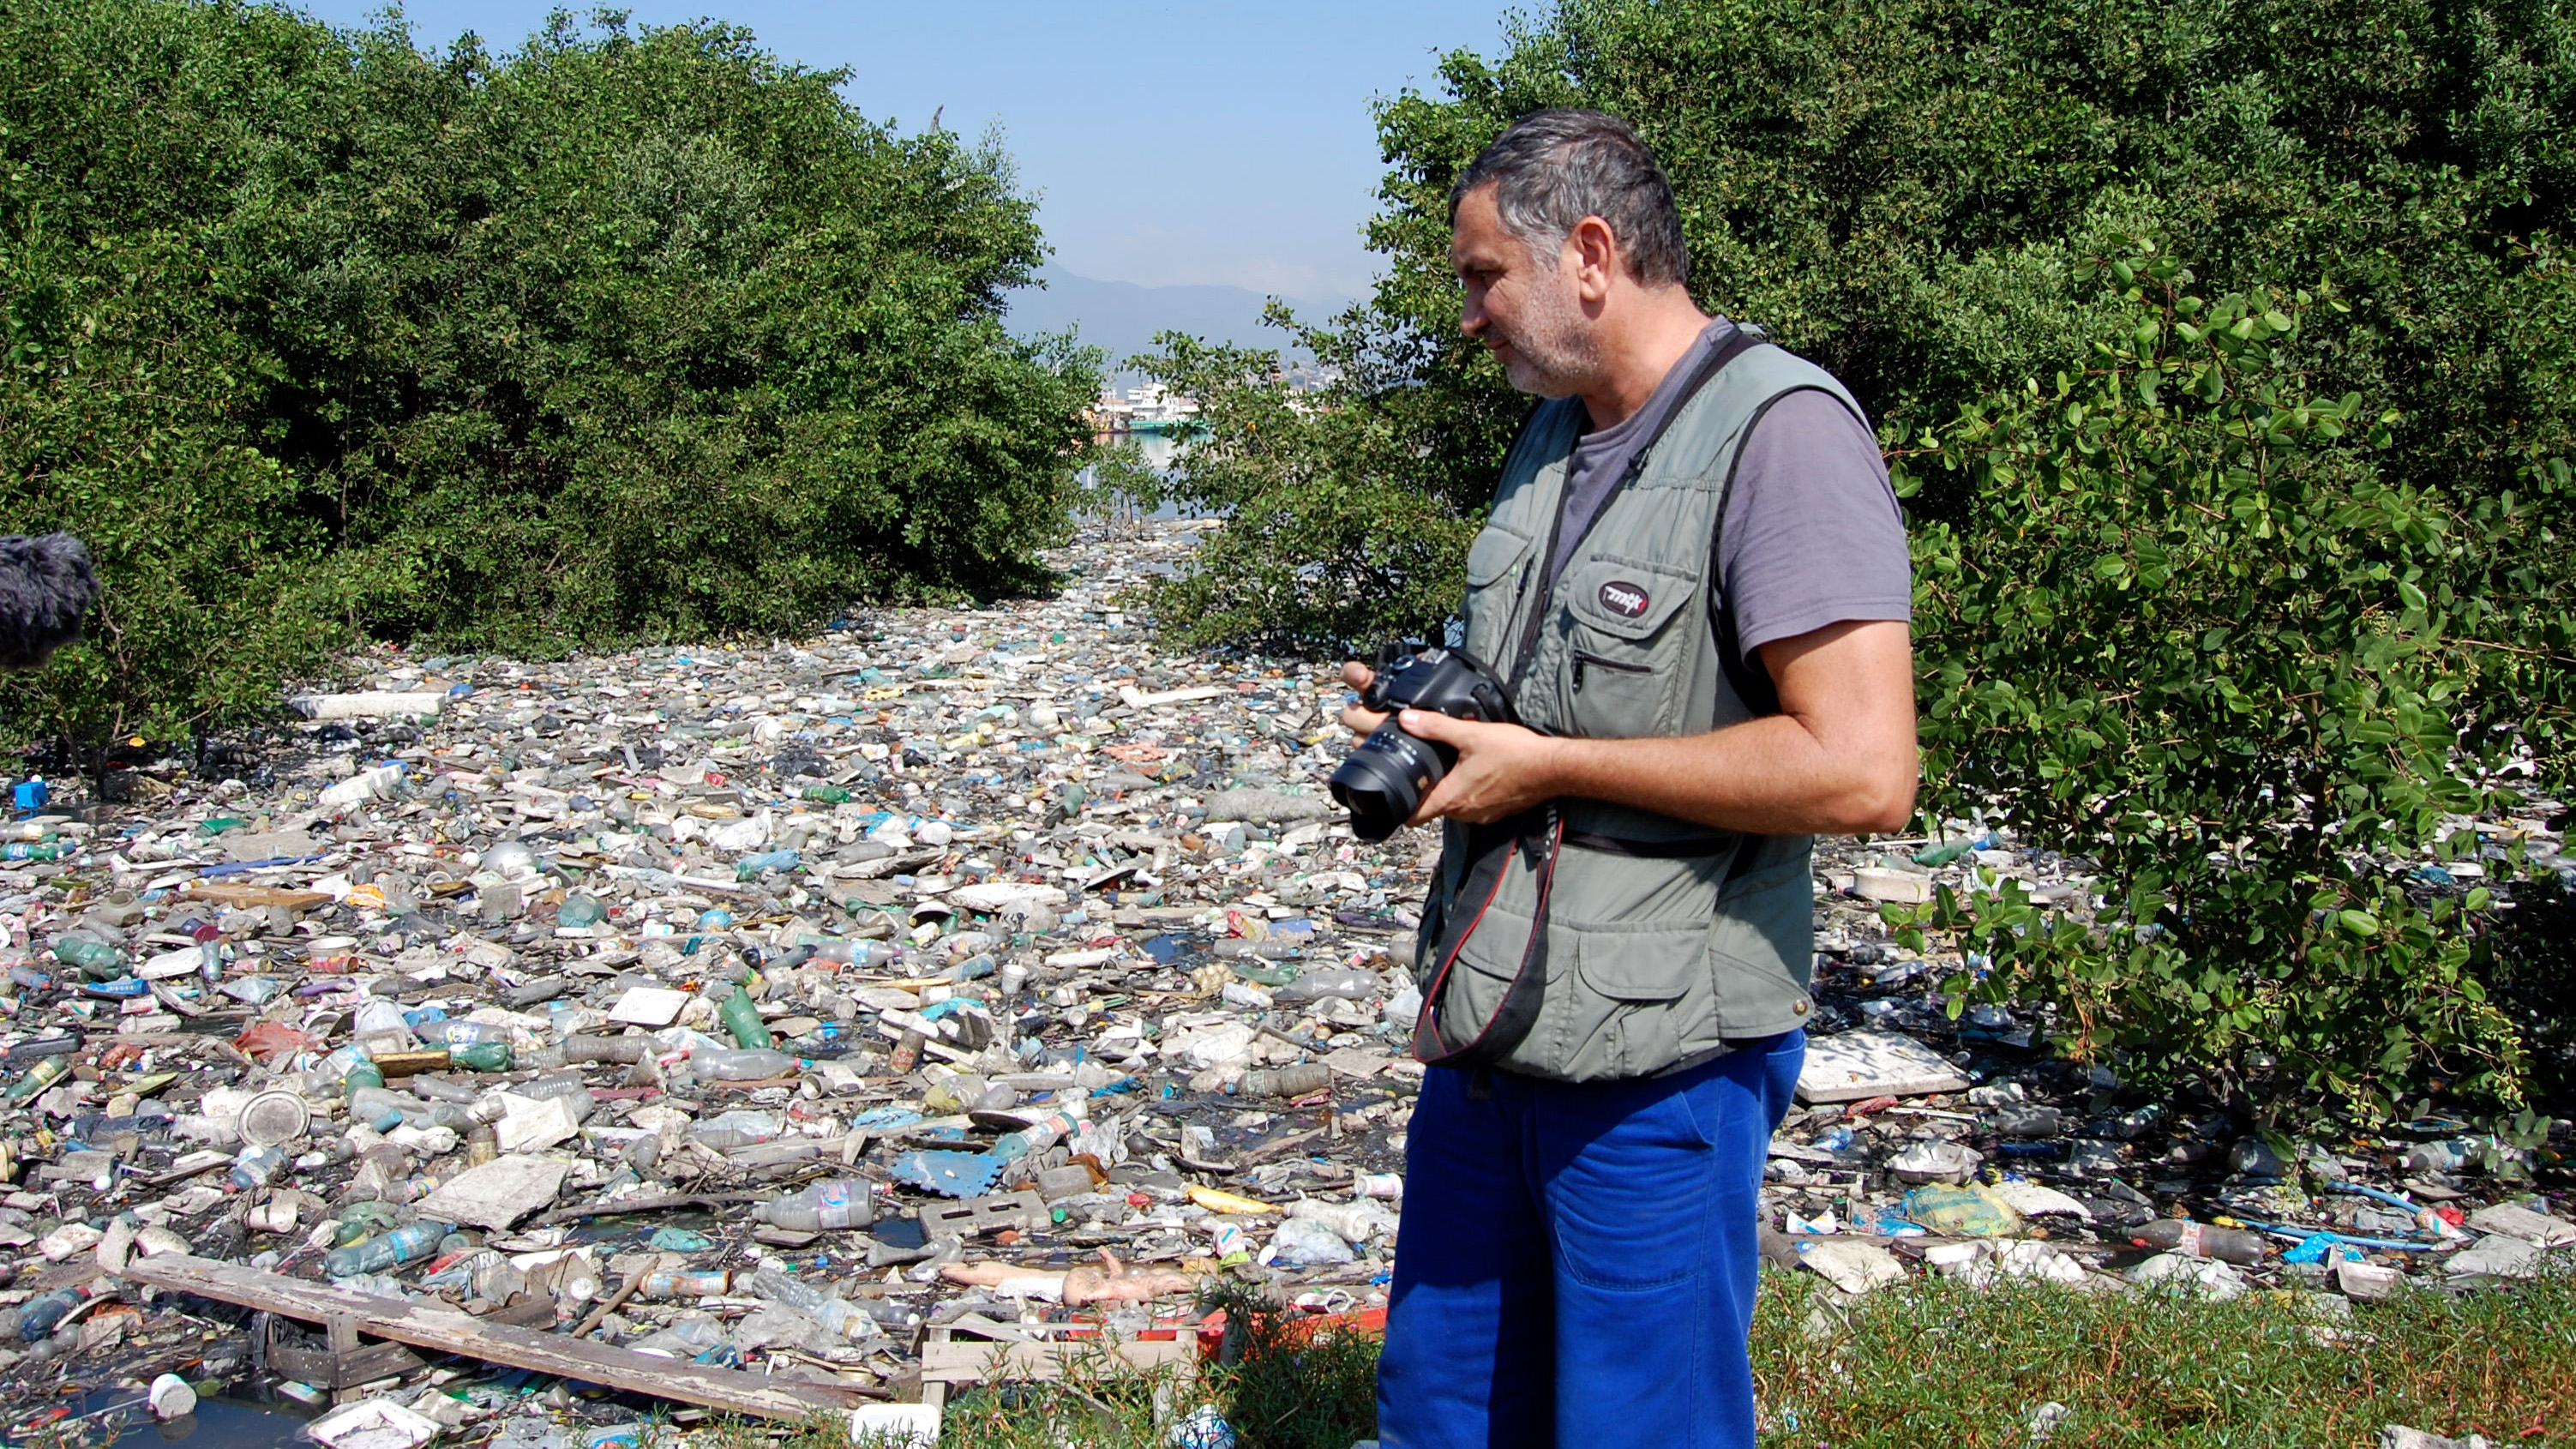 Biologist Mario Moscatelli along the shores of Guanabara Bay in Rio